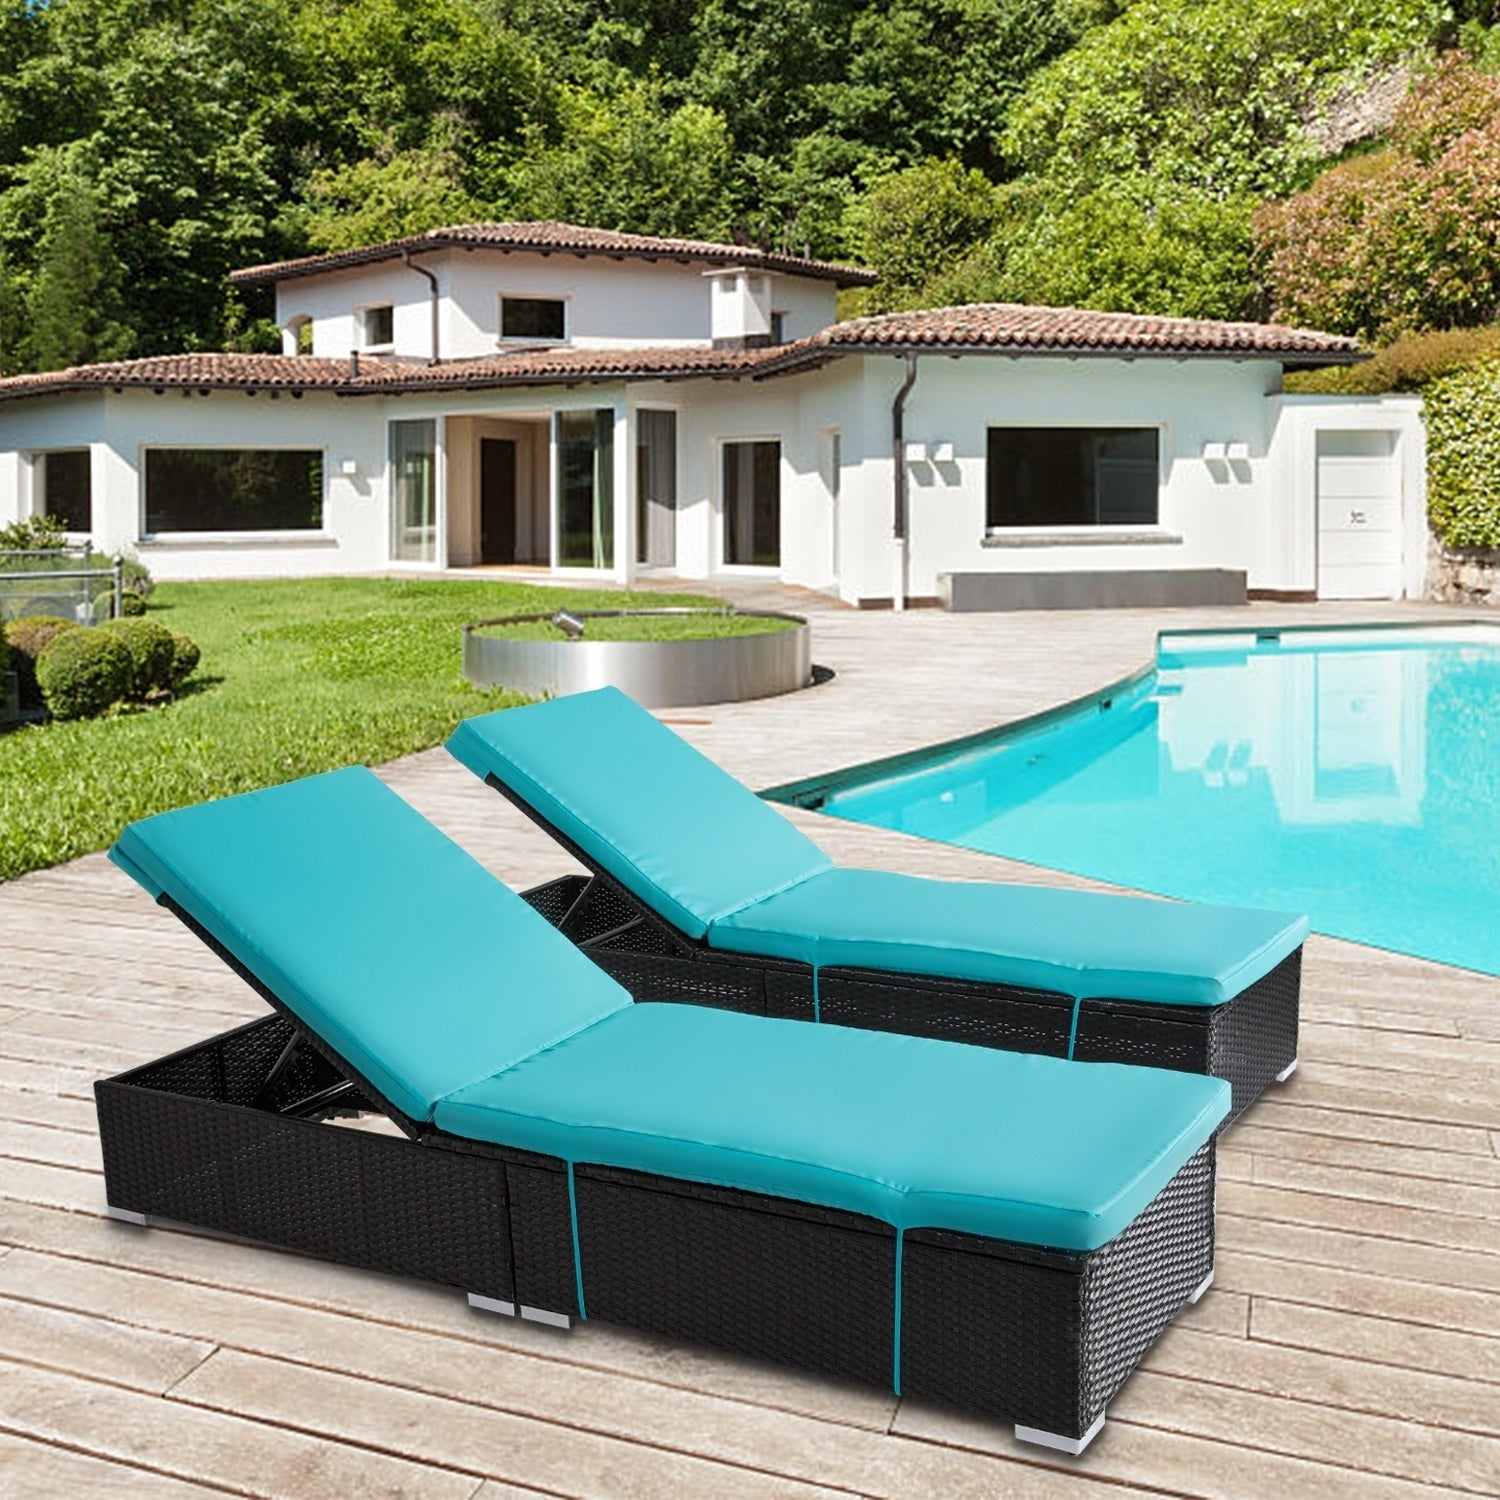 Kinbor 3PCs Outdoor Adjustable Chaise Lounge Chair Set All Weather PE  Rattan Wicker Chaise Lounge